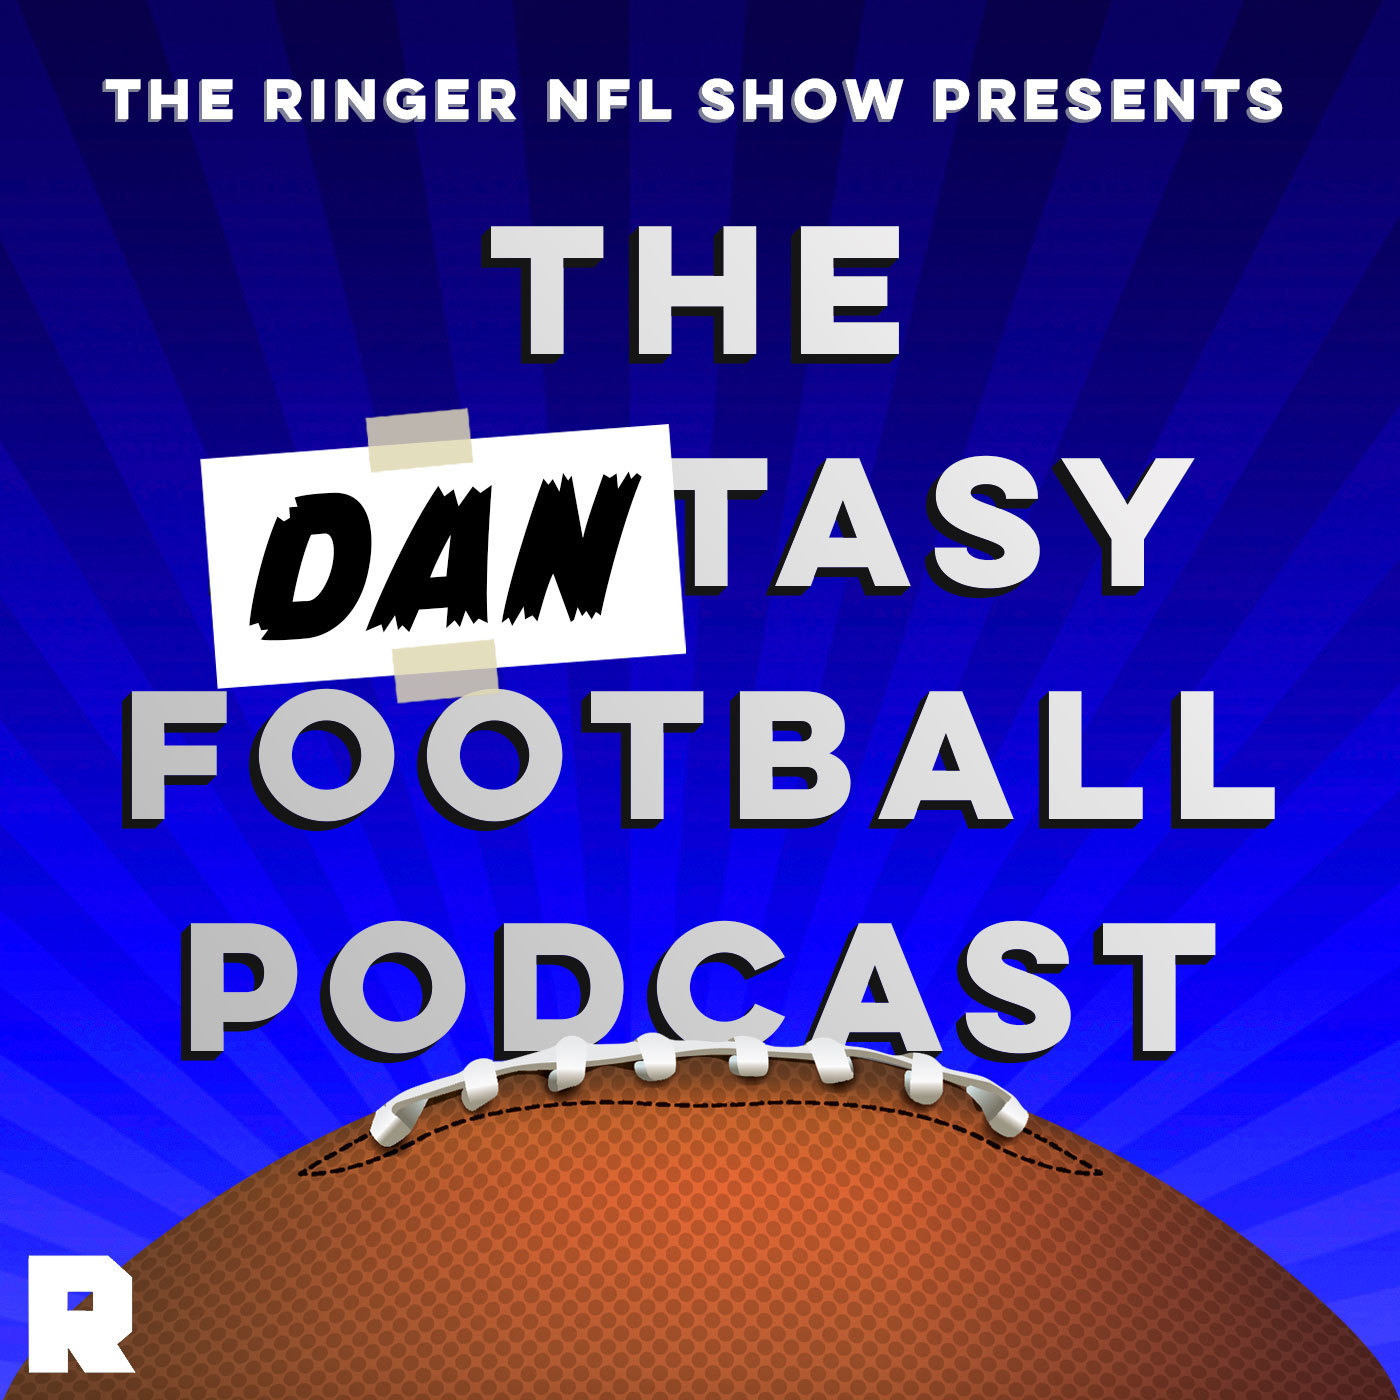 A Crash Course on the 2020 Wide Receiver Draft Class | The Dantasy Football Podcast